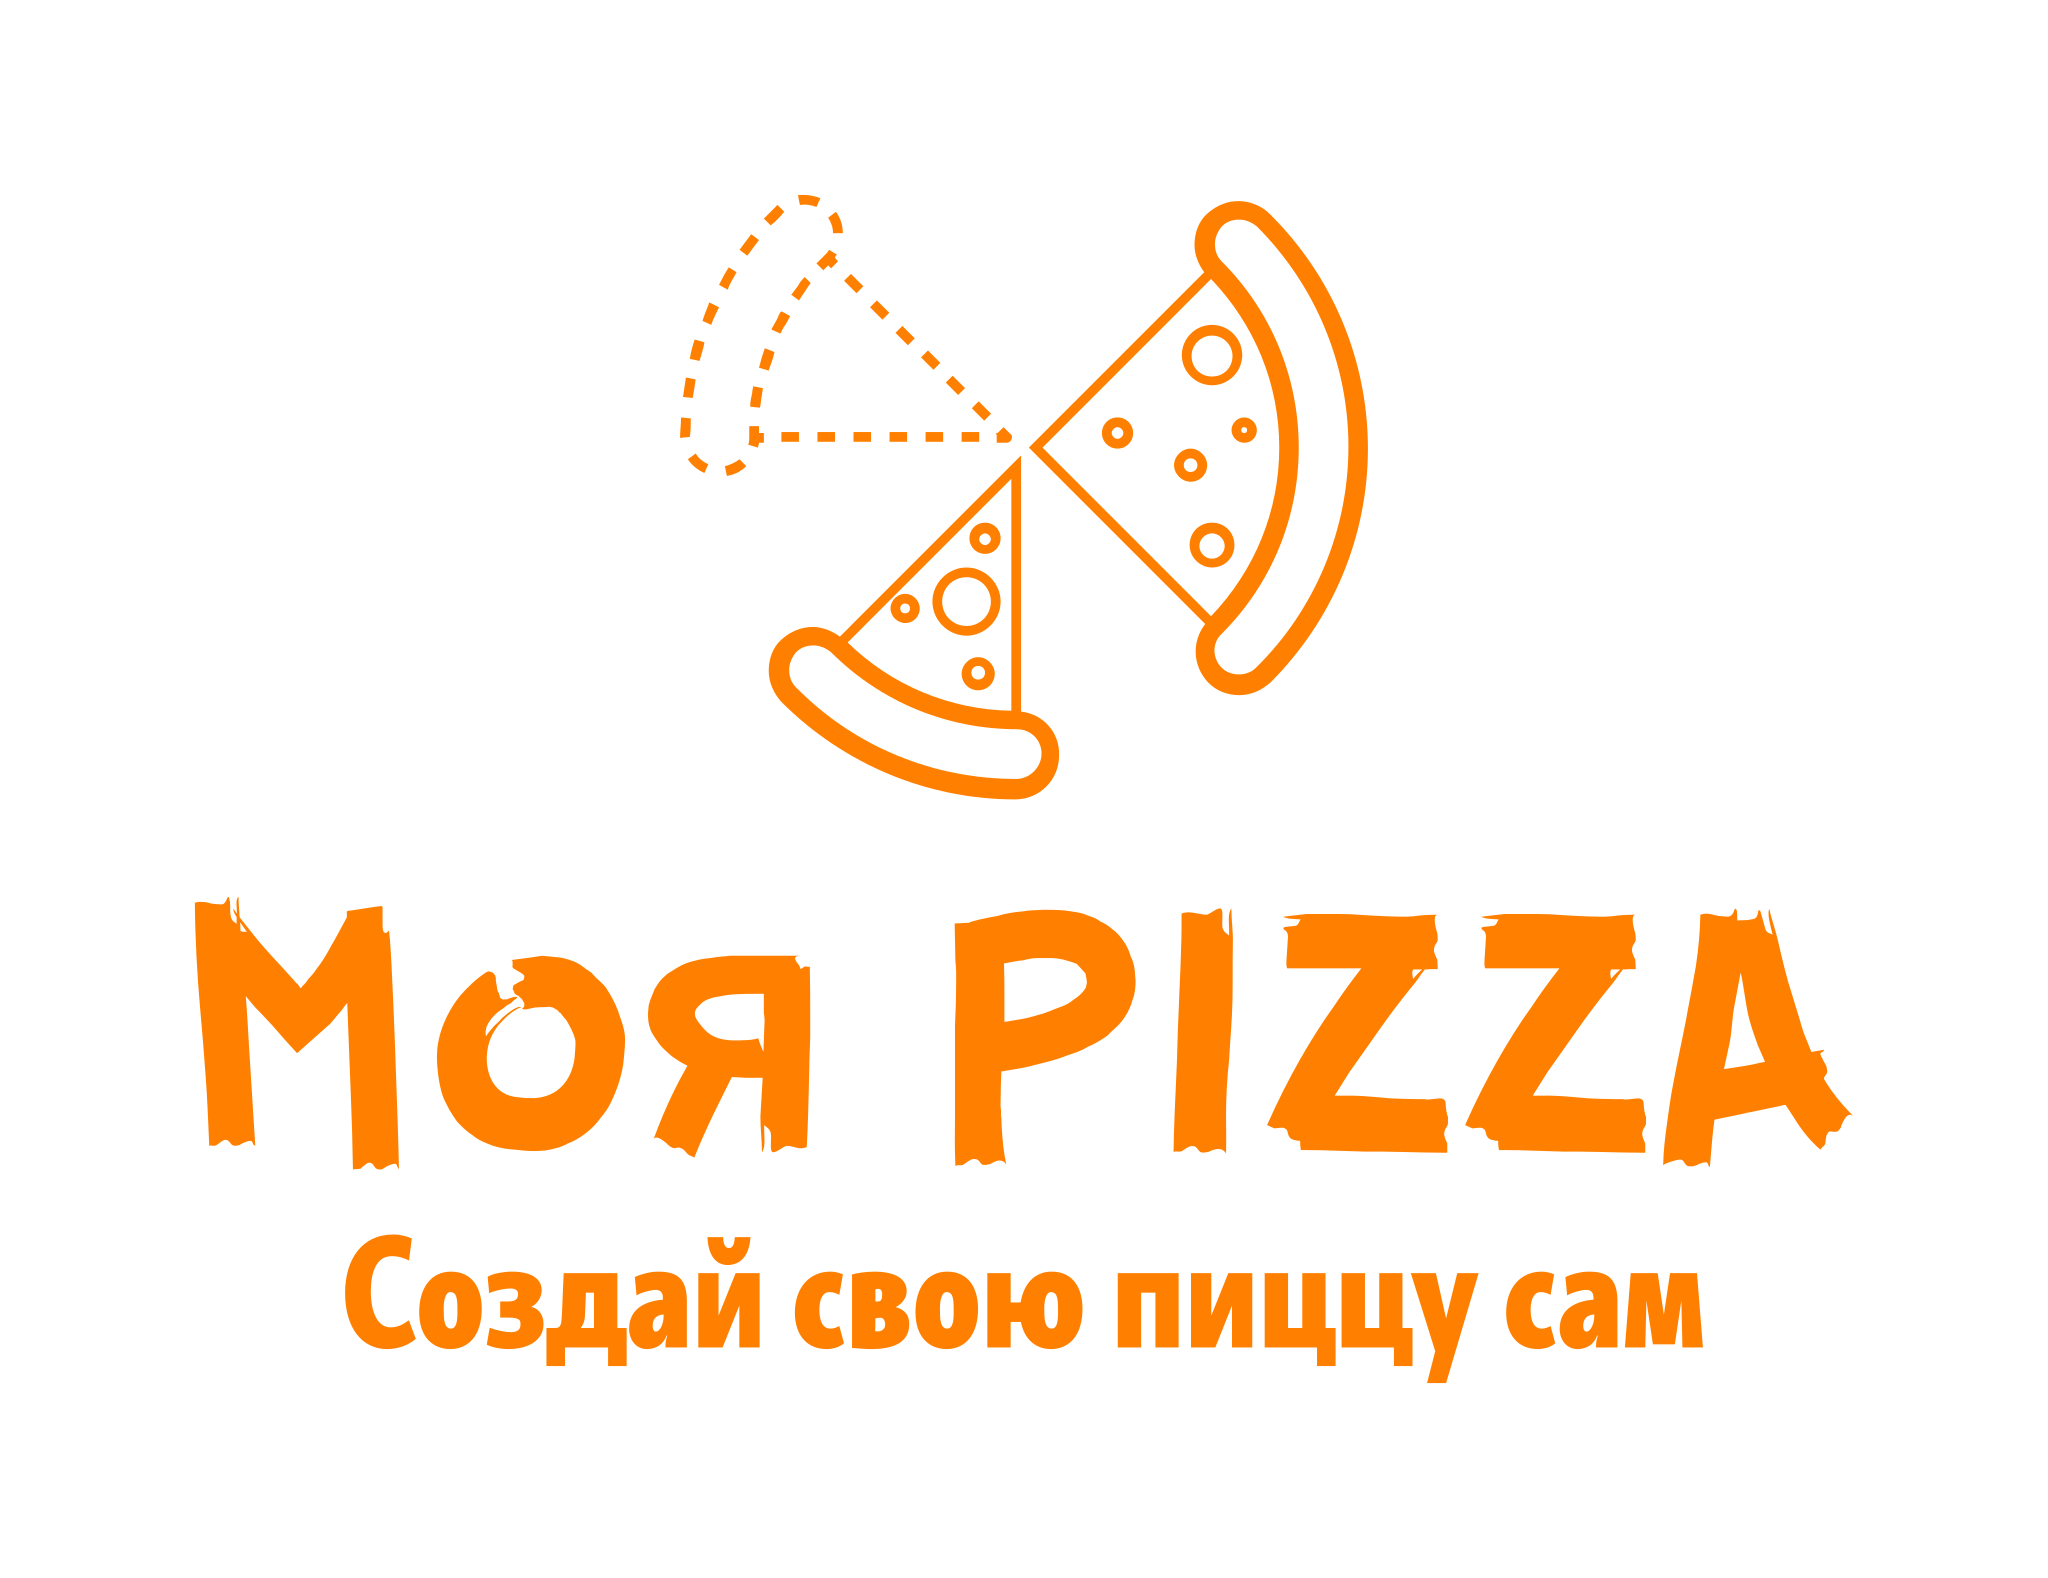 Моя Pizza Logo